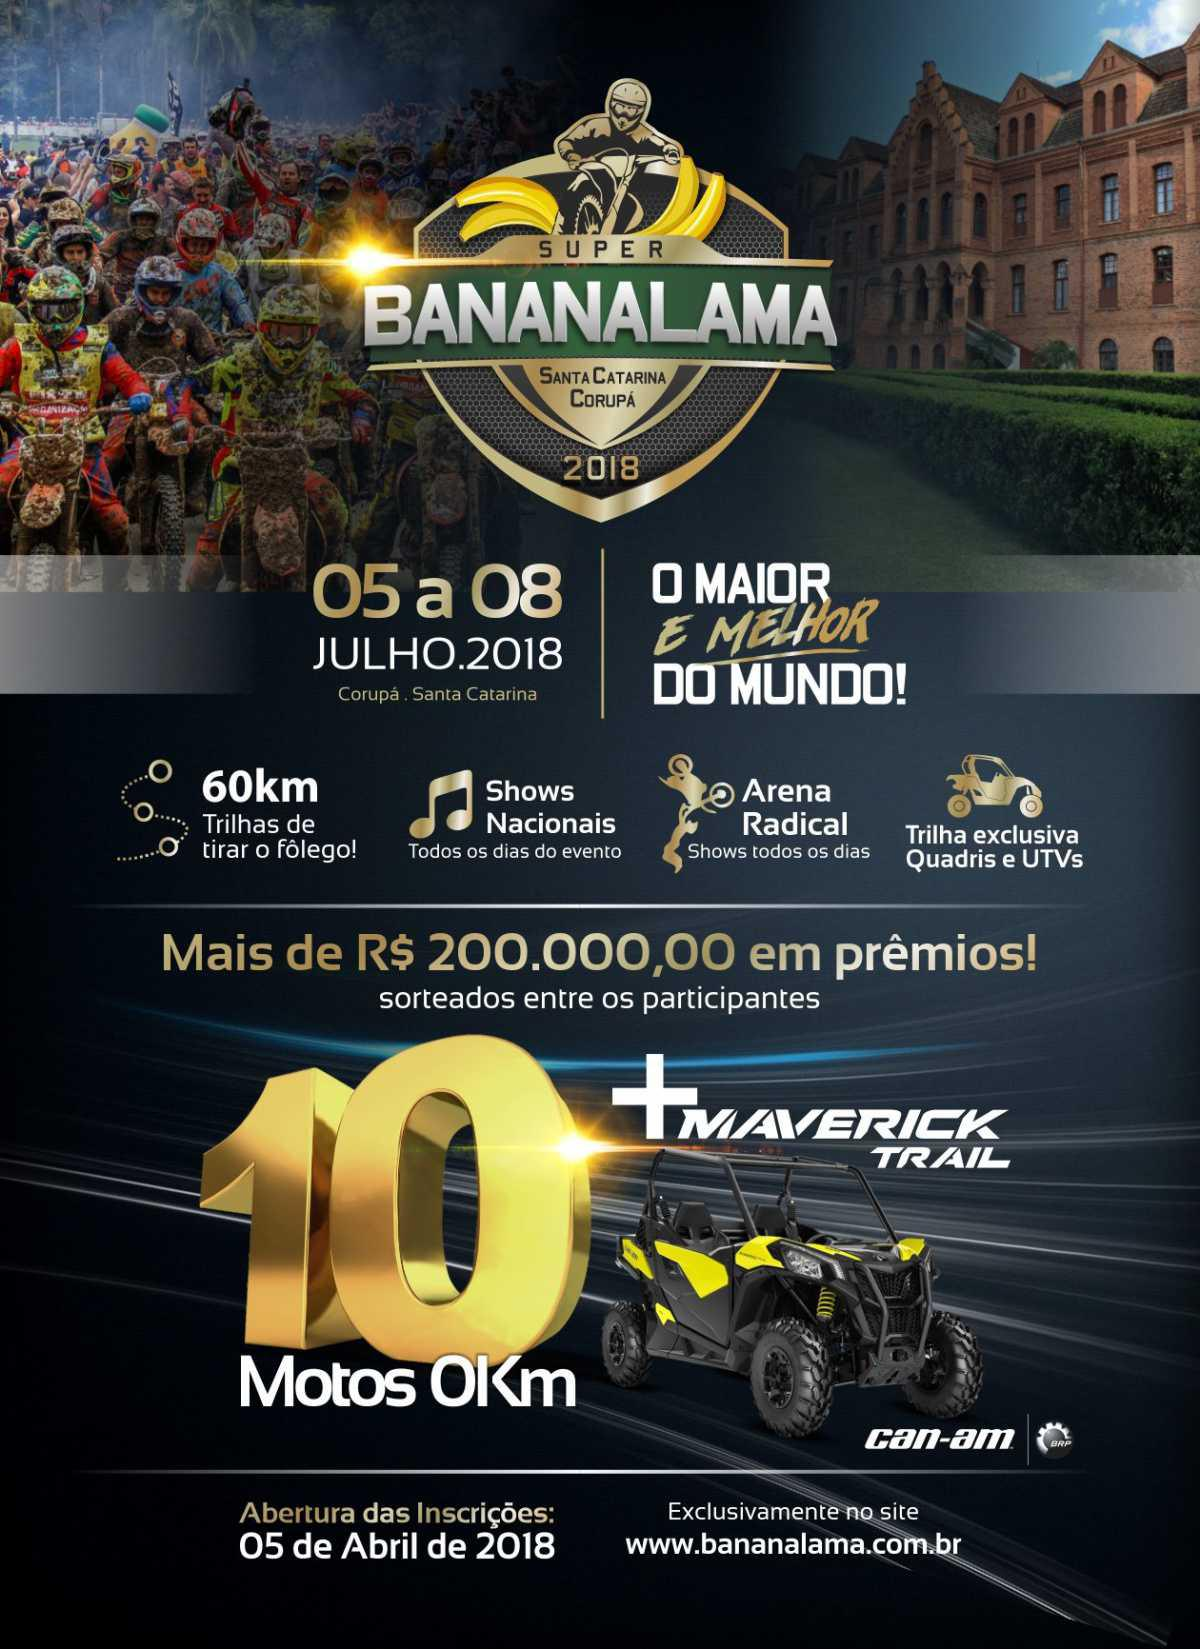 Borilli Racing - Pneus Off Road confirma patrocínio ao Super Bananalama 2018